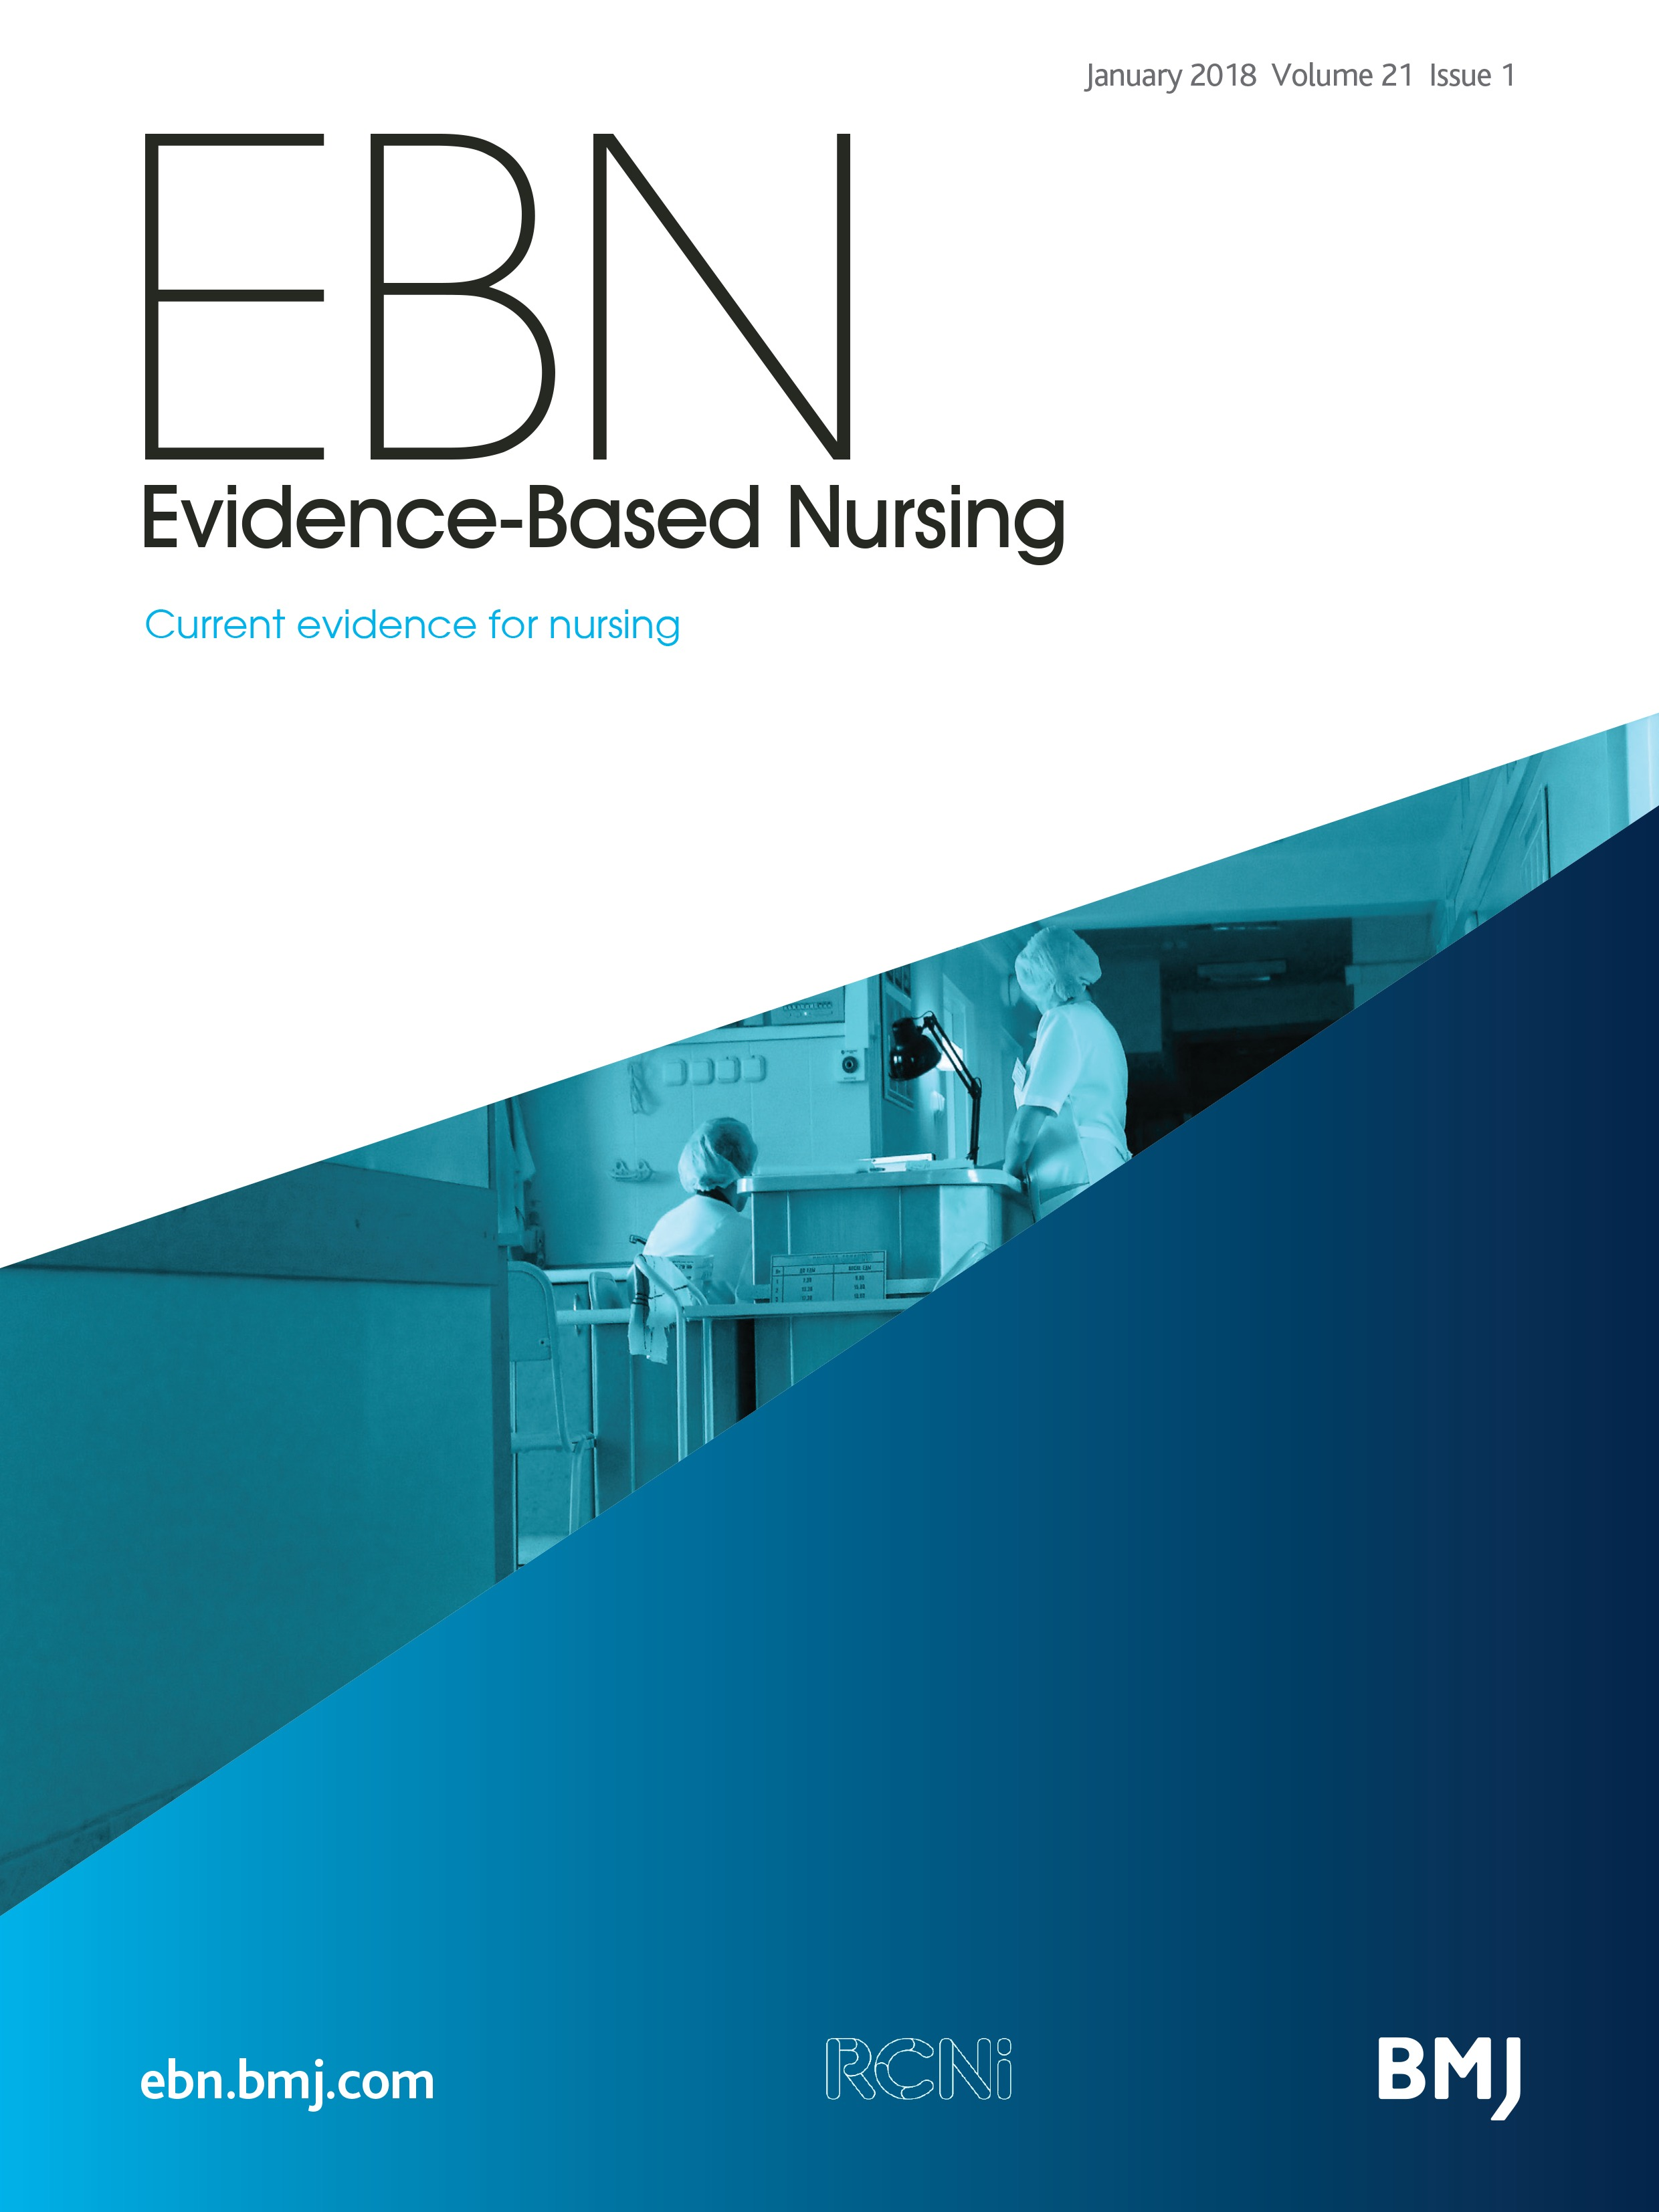 What is a case study? | Evidence-Based Nursing